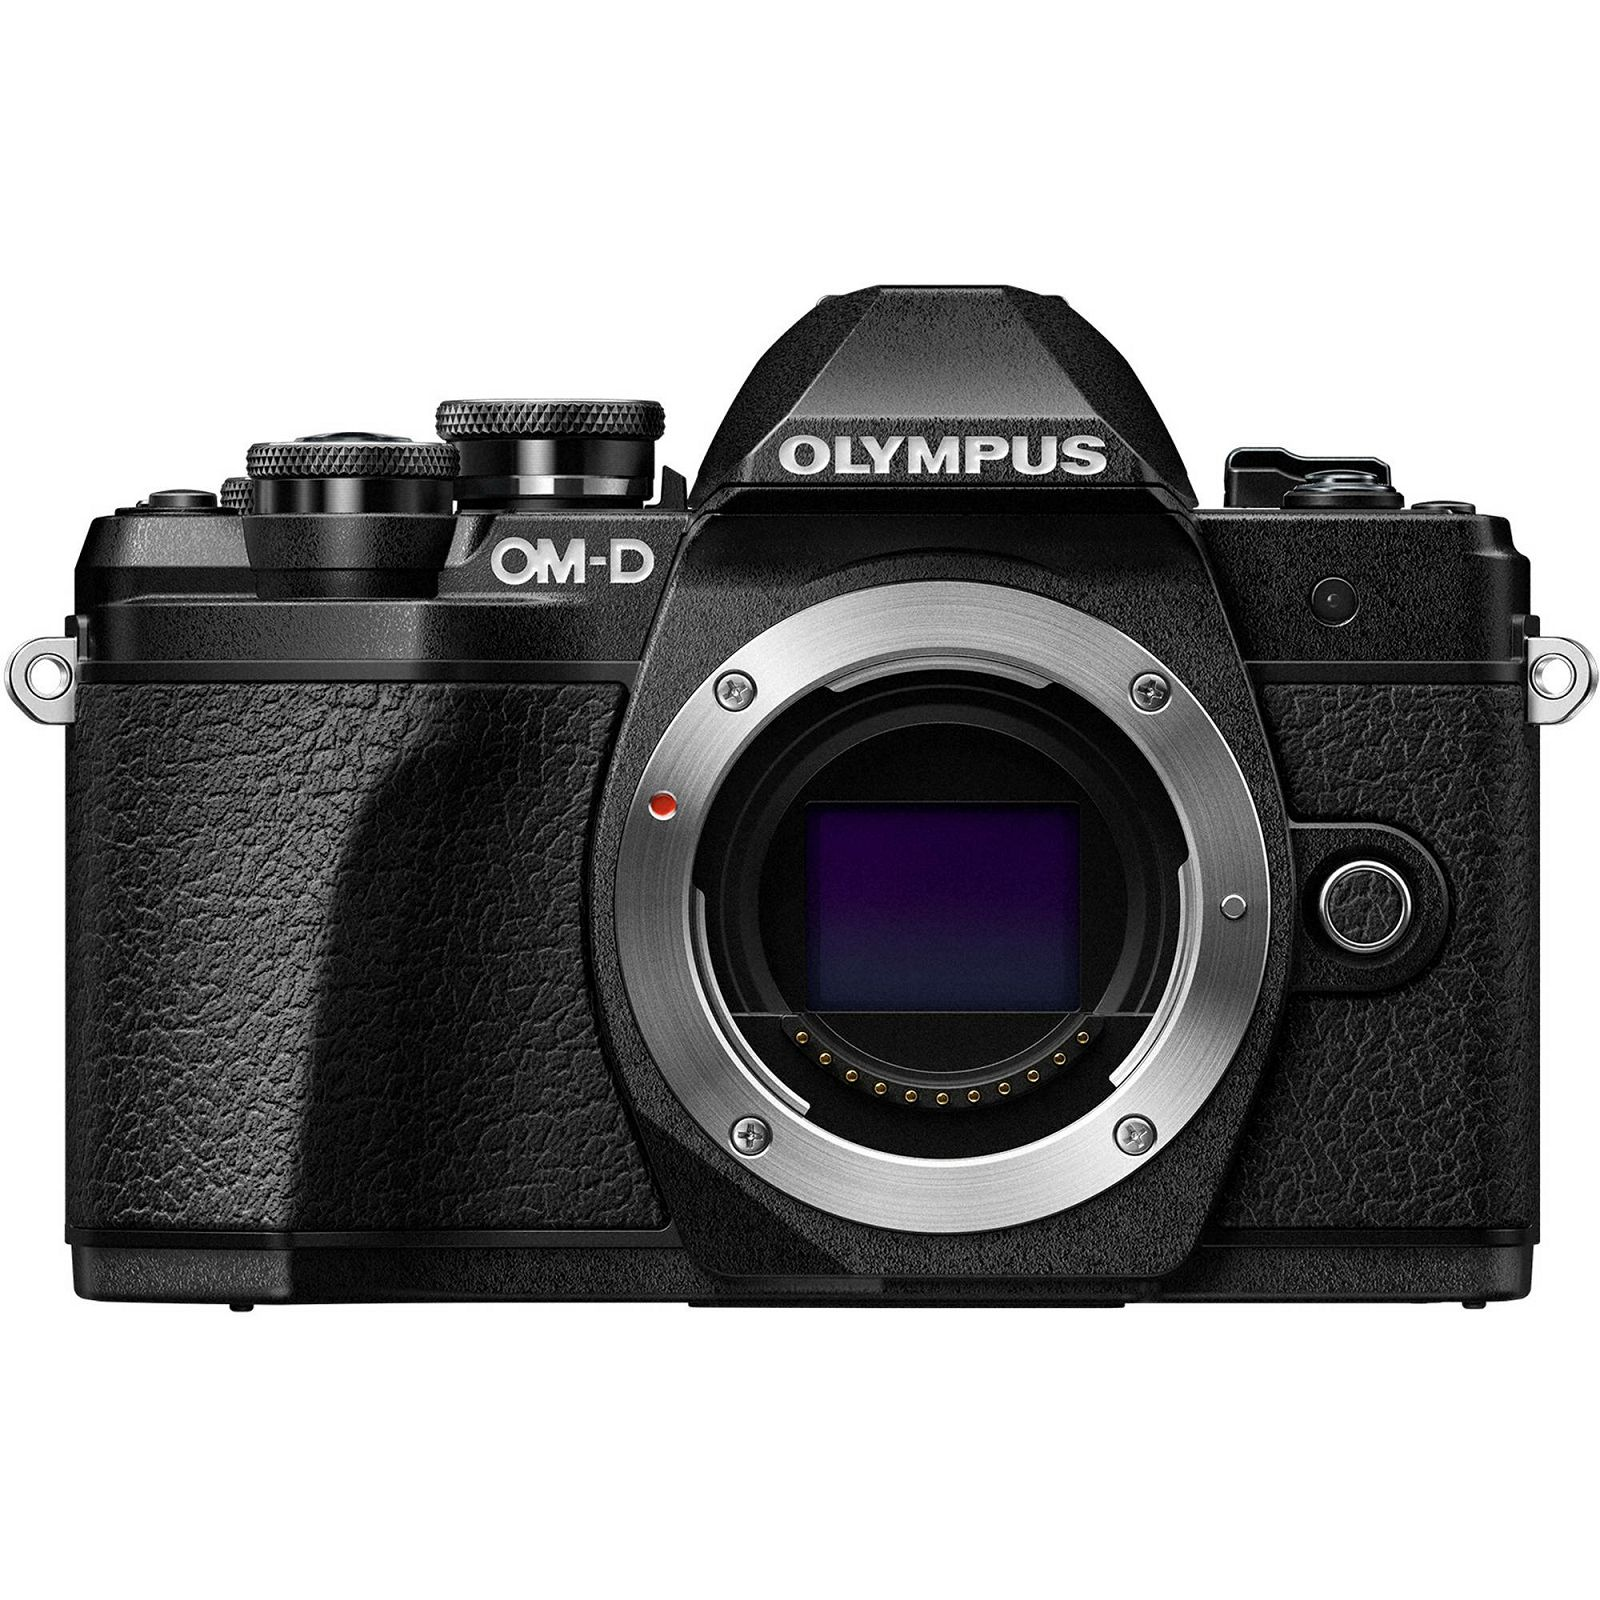 Olympus E-M10 III Body Black crni digitalni fotoaparat tijelo Mirrorless MFT Micro Four Thirds Digital Camera (V207070BE000)